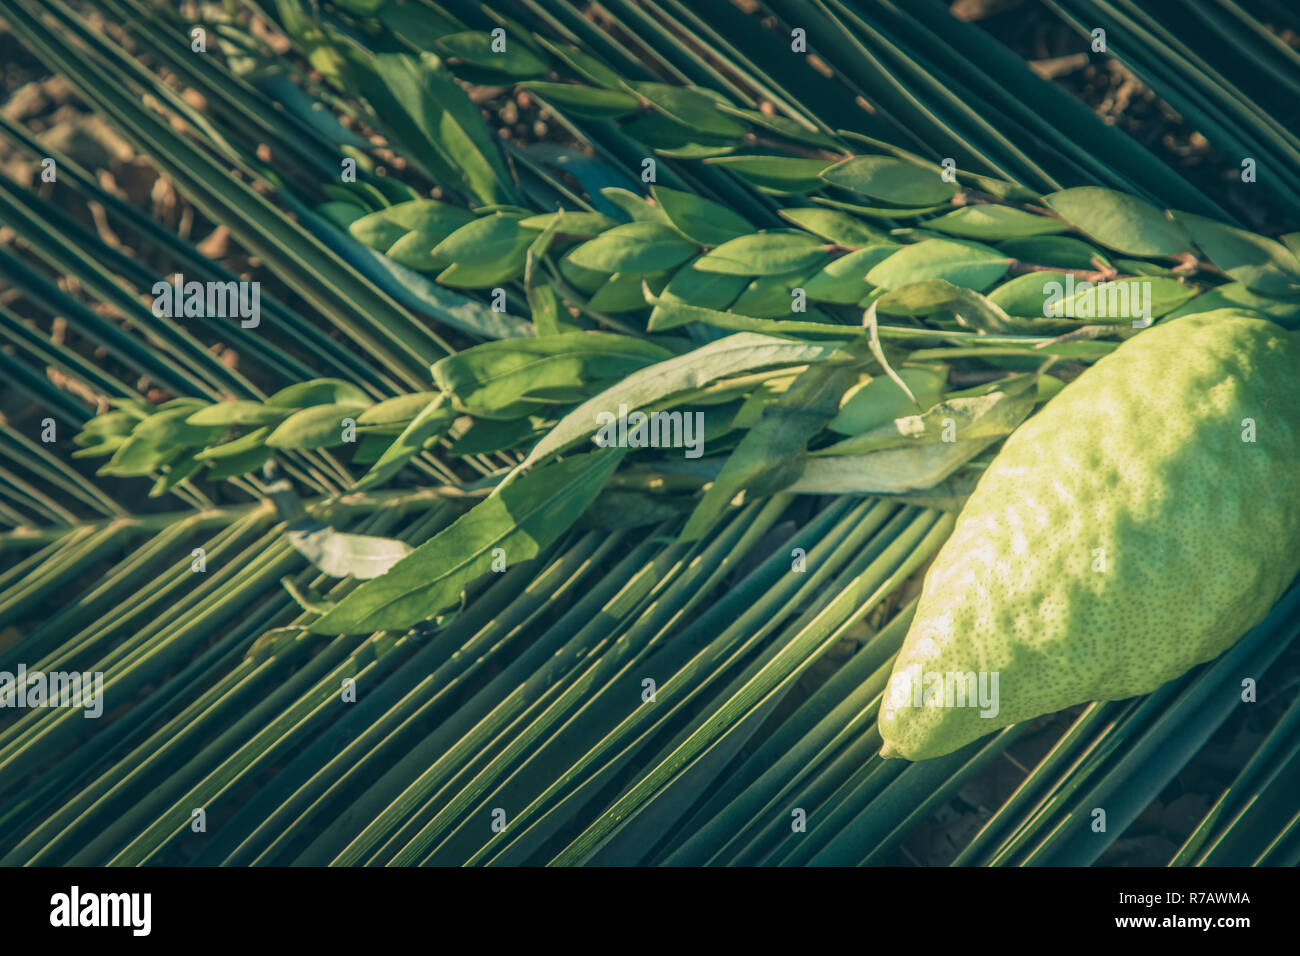 Traditional symbols (The four species) of jewish fall festival of Sukkot, etrog, palm branch, myrtle and willow. - Stock Image